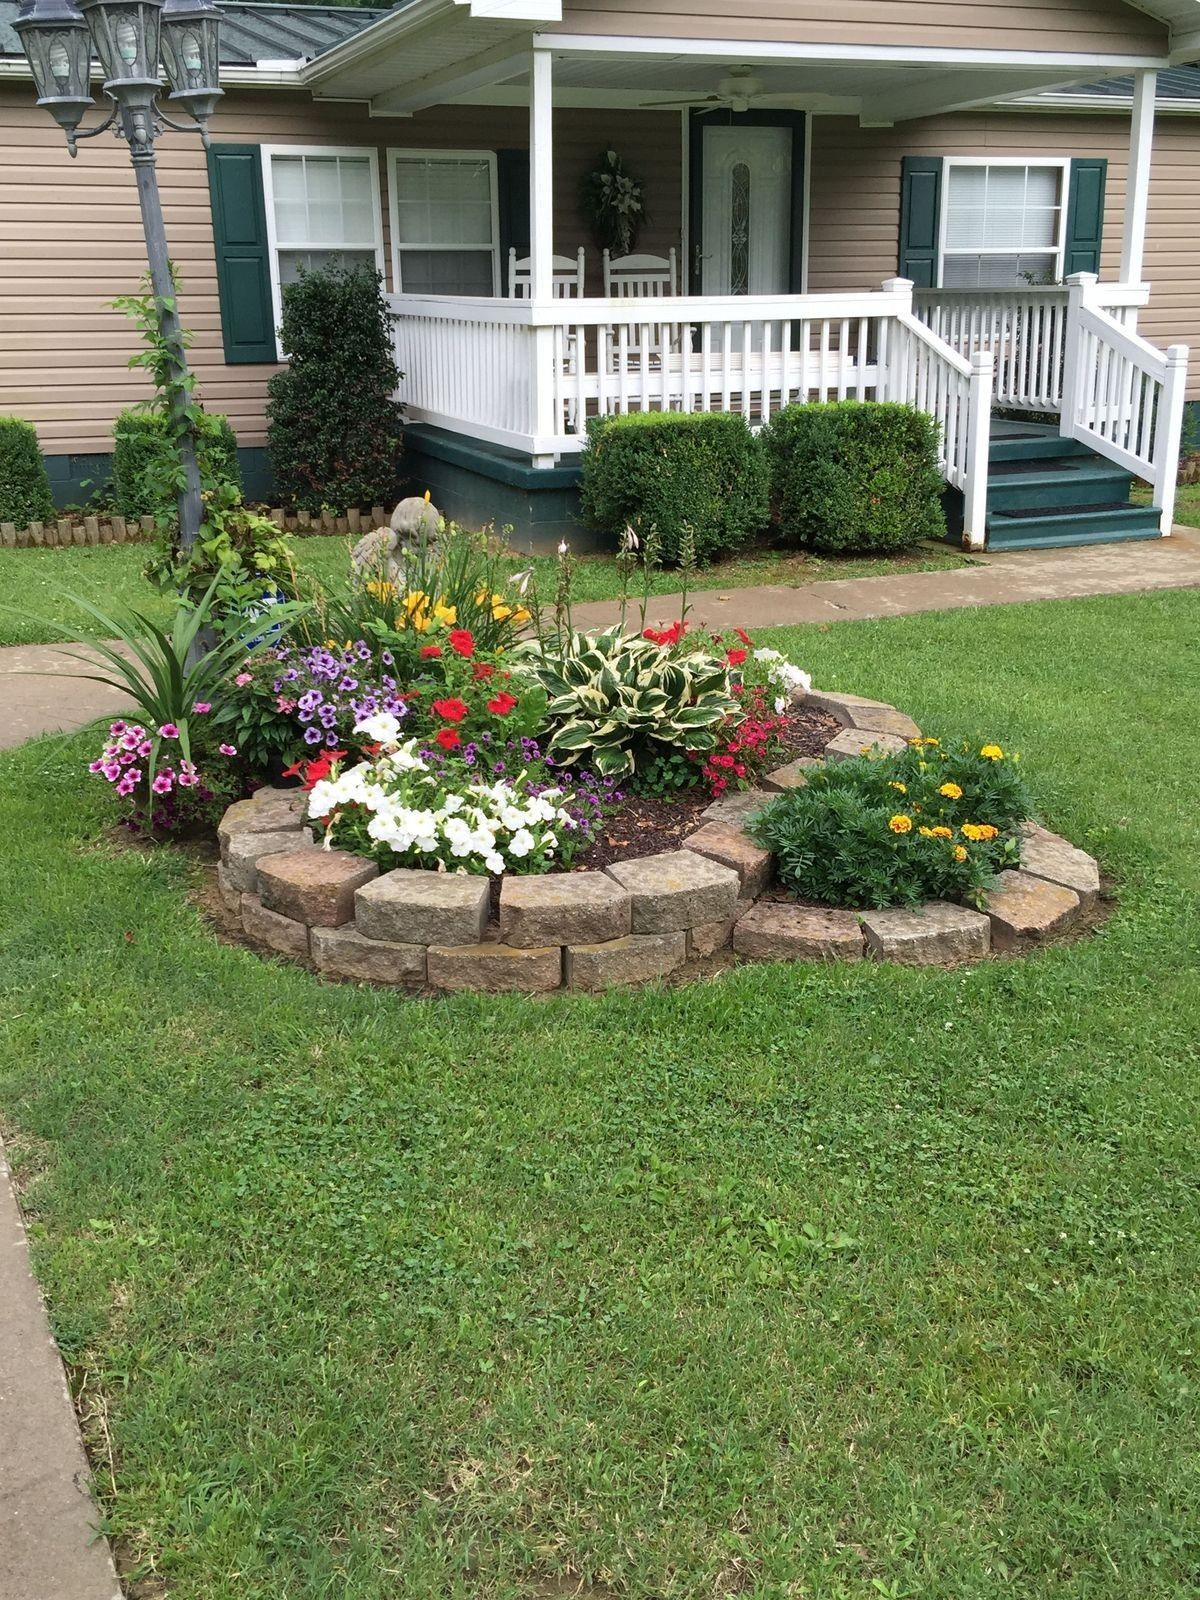 3 Engaging Tips And Tricks Backyard Garden Boxes Landscapes Backyard Garden Fence Front Yard Landscaping Design Front Yard Garden Backyard Landscaping Designs Backyard garden design tool